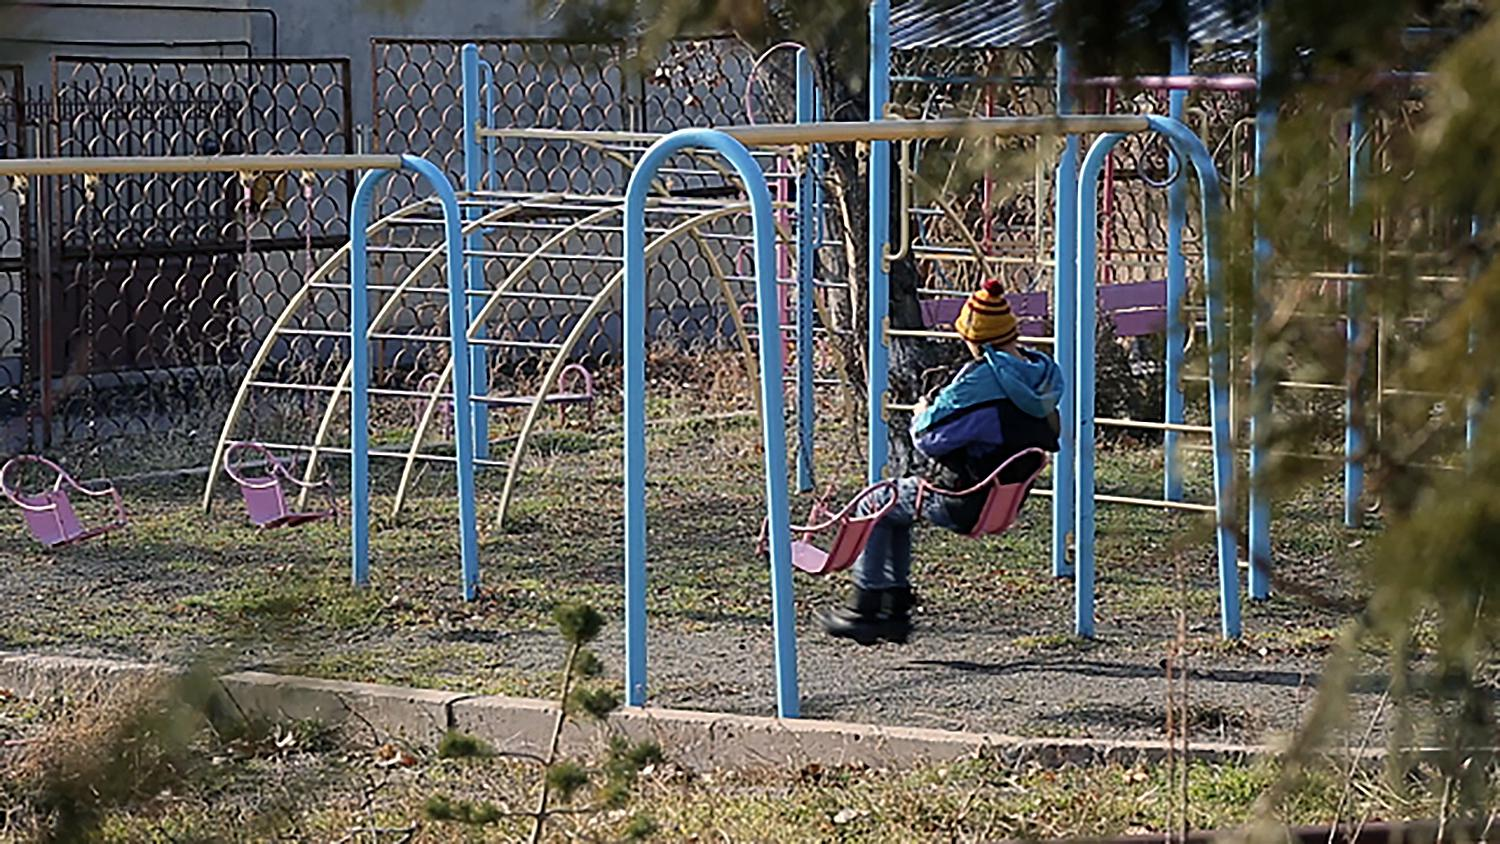 Important Progress for People with Disabilities in Armenia